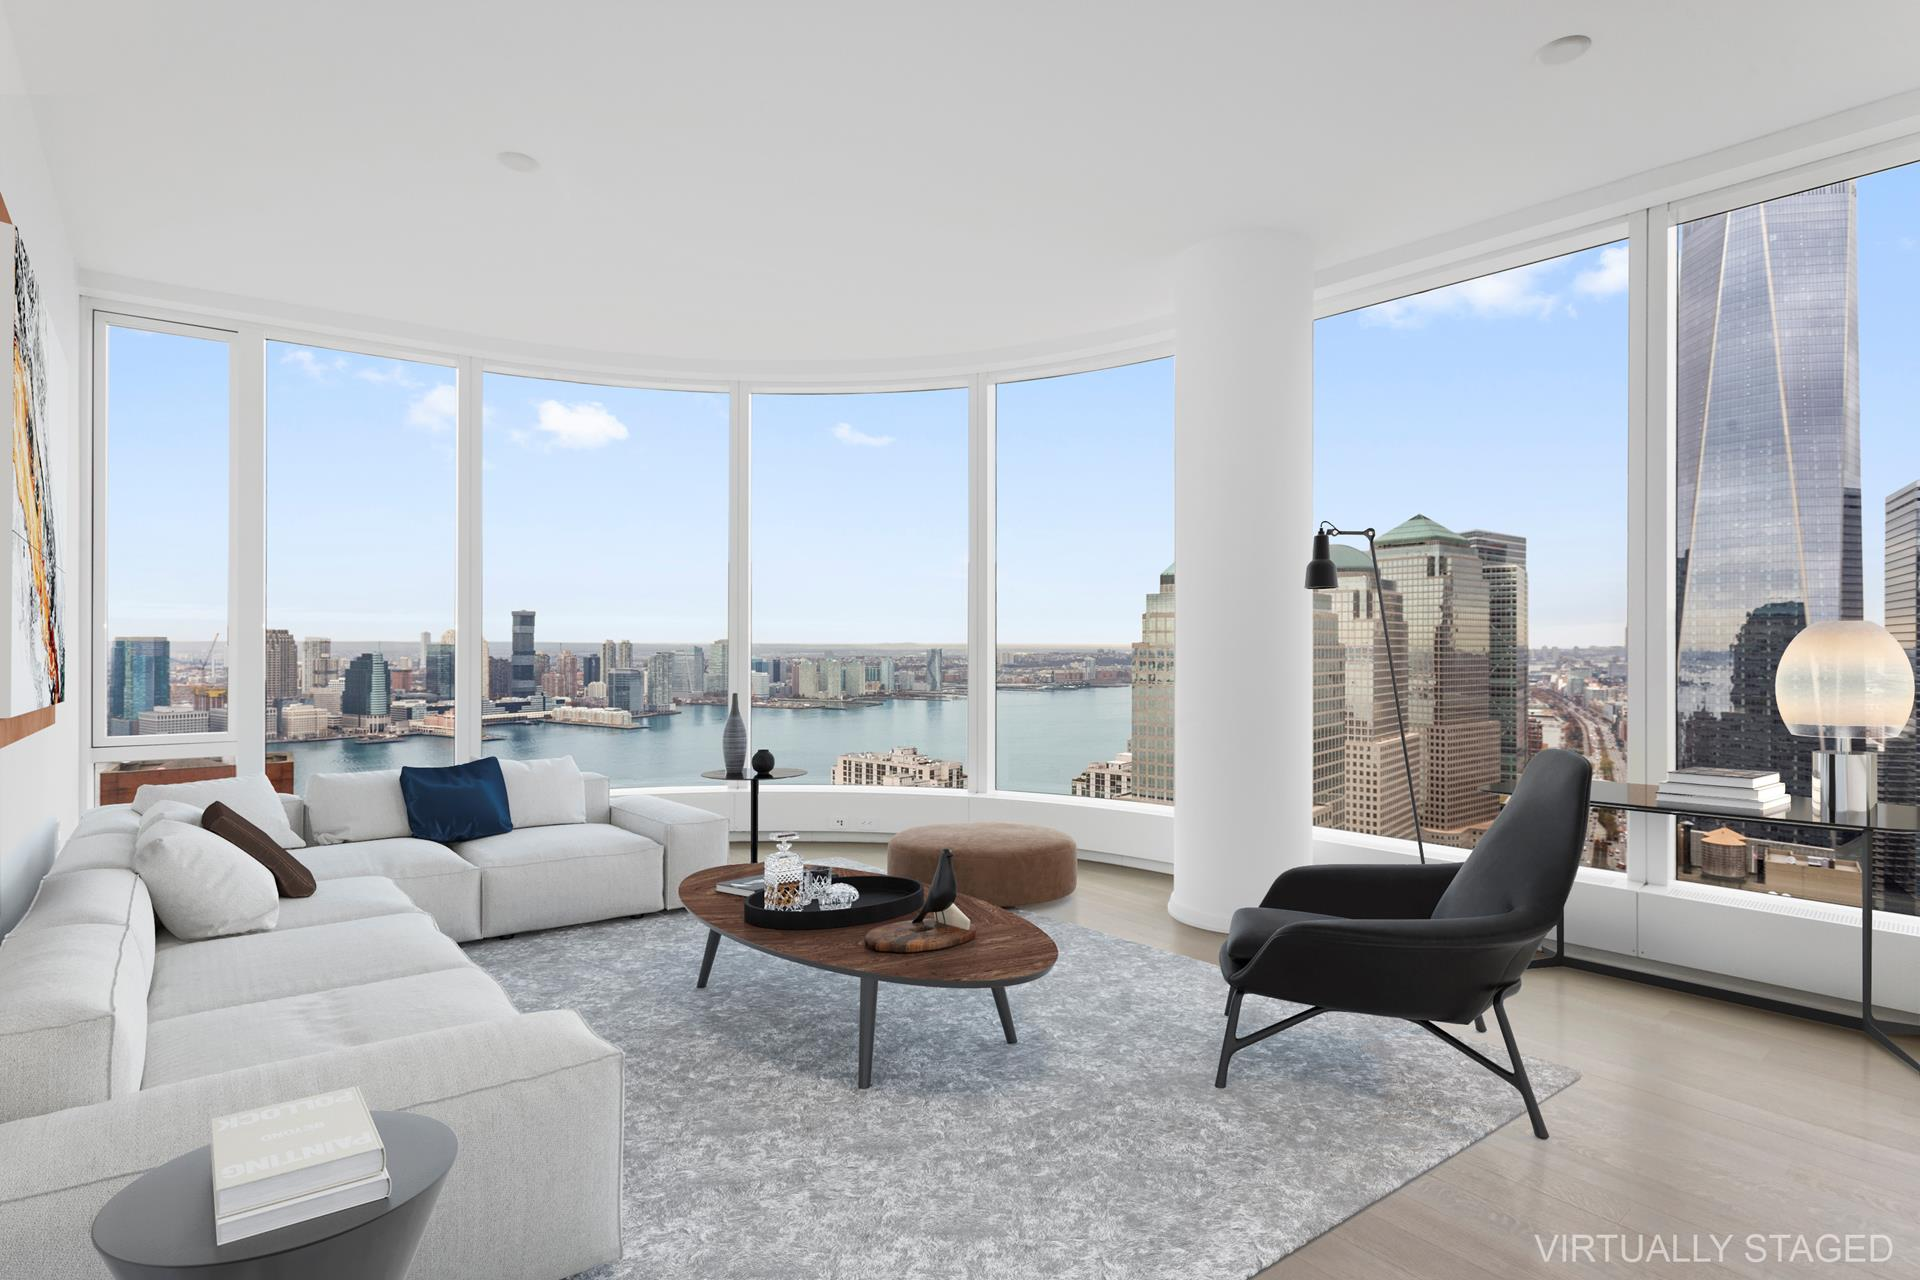 Experience this glorious high-floor home in one of the most luxurious residences, 50 West Street.Graced with stunning views of the Hudson River and the New York City skyline, this bright convertible 2-bedroom, 2-bathroom condo blends a collection of high-end finishes with a contemporary open plan layout. Features of this 1,258 sq. ft. home include an in-unit washer/dryer, open plan layout, northern and western exposure, beautiful hardwood floors, gorgeous curved floor-to-ceiling windows, and an elegant entry foyer leads to spectacular living space with an open kitchen which is designed with custom stained walnut cabinetry, granite countertops, and a waterfall island.Past a formal entryway foyer that's adorned with its own closet the home flows into a radiant, open-concept living room, dining room, and kitchen. The living and dining space possess tremendous views of the river and the World Trade Center. The kitchen is equipped with sleek countertops, a huge eat-in island, beautiful cabinetry, and a suite of fully-integrated stainless steel appliances. The master bedroom features skyline and river views, a pair of closets, and a sublime en-suite bathroom with dual vanity sinks and a glass-enclosed walk-in shower. Just across from the master is an absolutely immense walk-in closet/dressing room. The space boasts north-facing windows and built- in clothing racks. 50 West Street is a 64-story luxury condominium designed by renowned architect Helmut Jahn. The building features a host of high-end amenities that include a full-time doorman, a 24-hour concierge, a series of children's playrooms/recreation spaces, a massive fitness center with a golf simulator and a spin studio, an extensive entertainment suite, a rooftop observatory with commanding 360-degree views, and the spa-like amenities of the Water Club.50 West Street is surrounded by unprecedented conveniences and access to the outdoors. Easy access to 1, 4, 5, R, and W subways, Eataly, Le District, and the soon-to-b